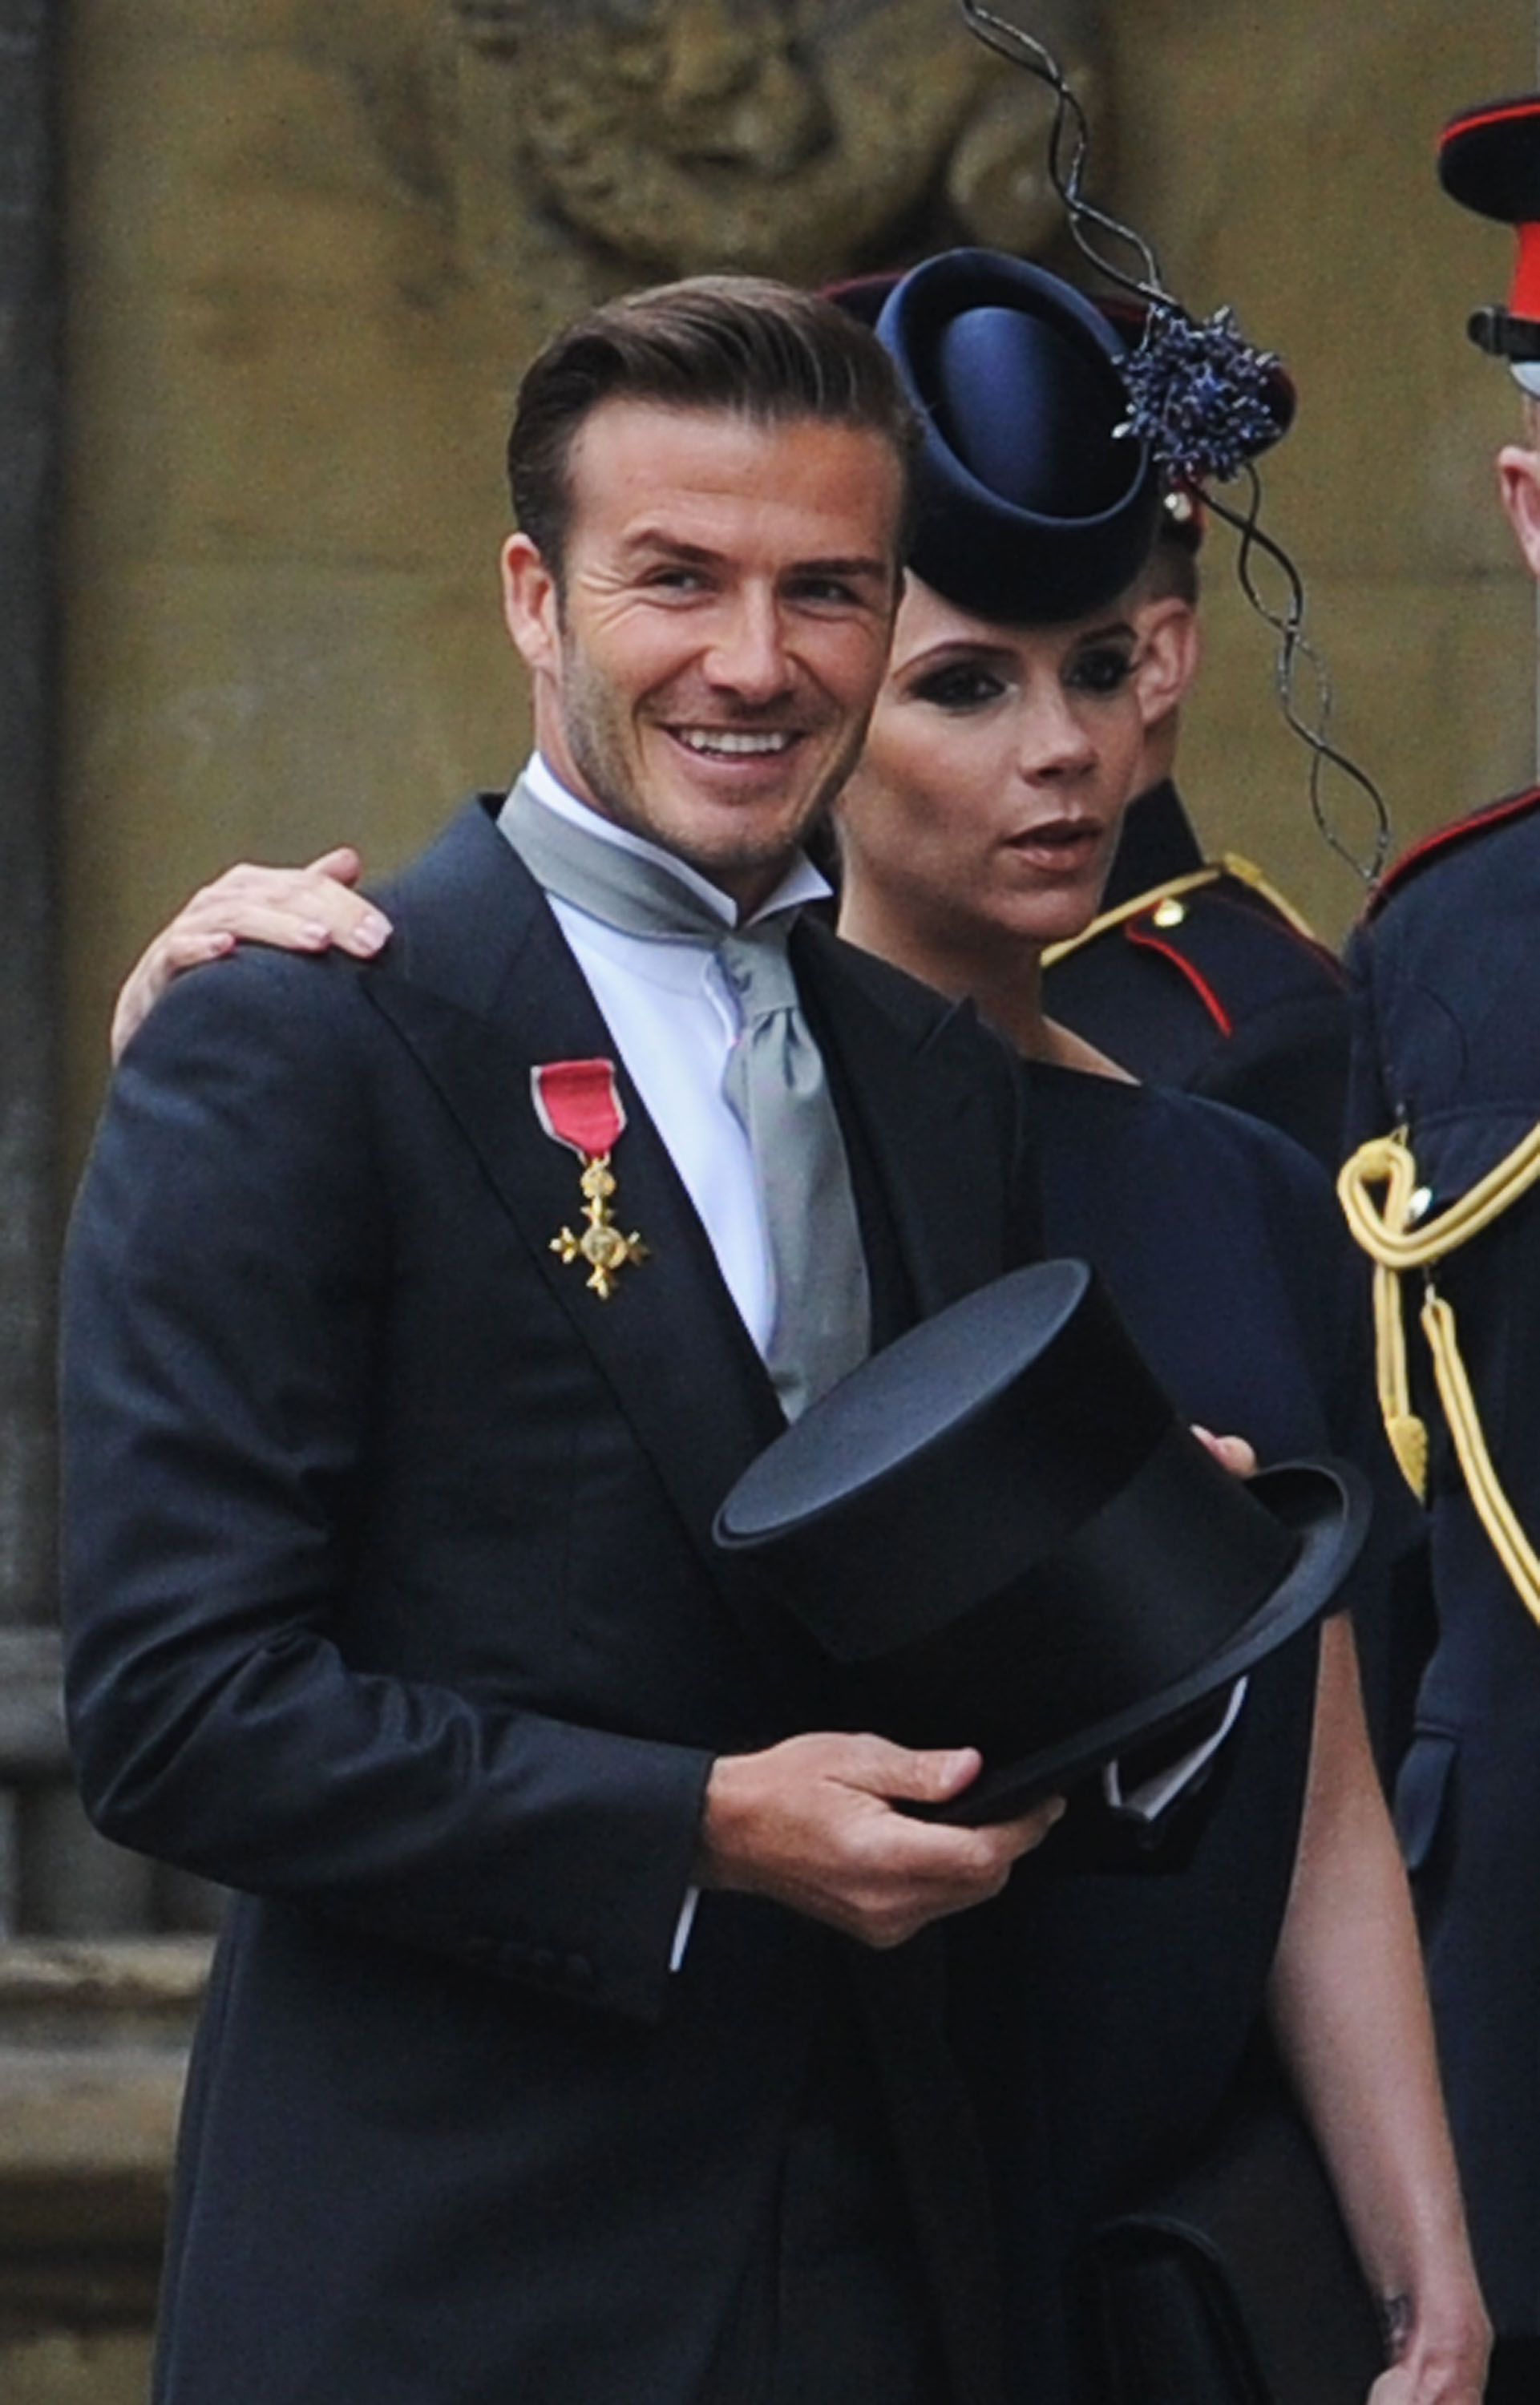 Posh and Becks!